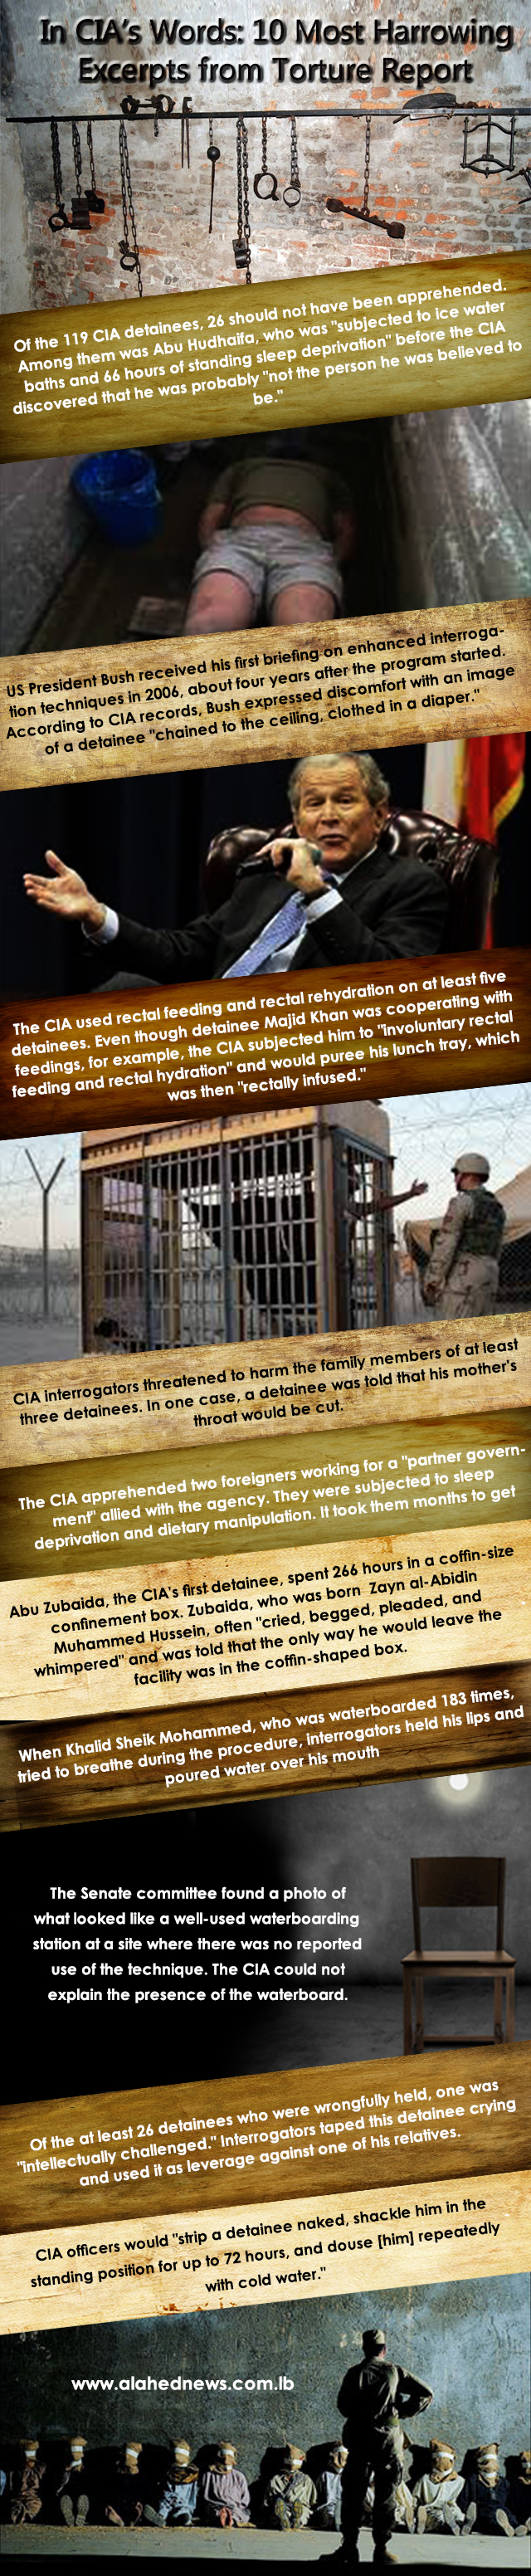 10 Most Harrowing Excerpts from CIA Torture Report